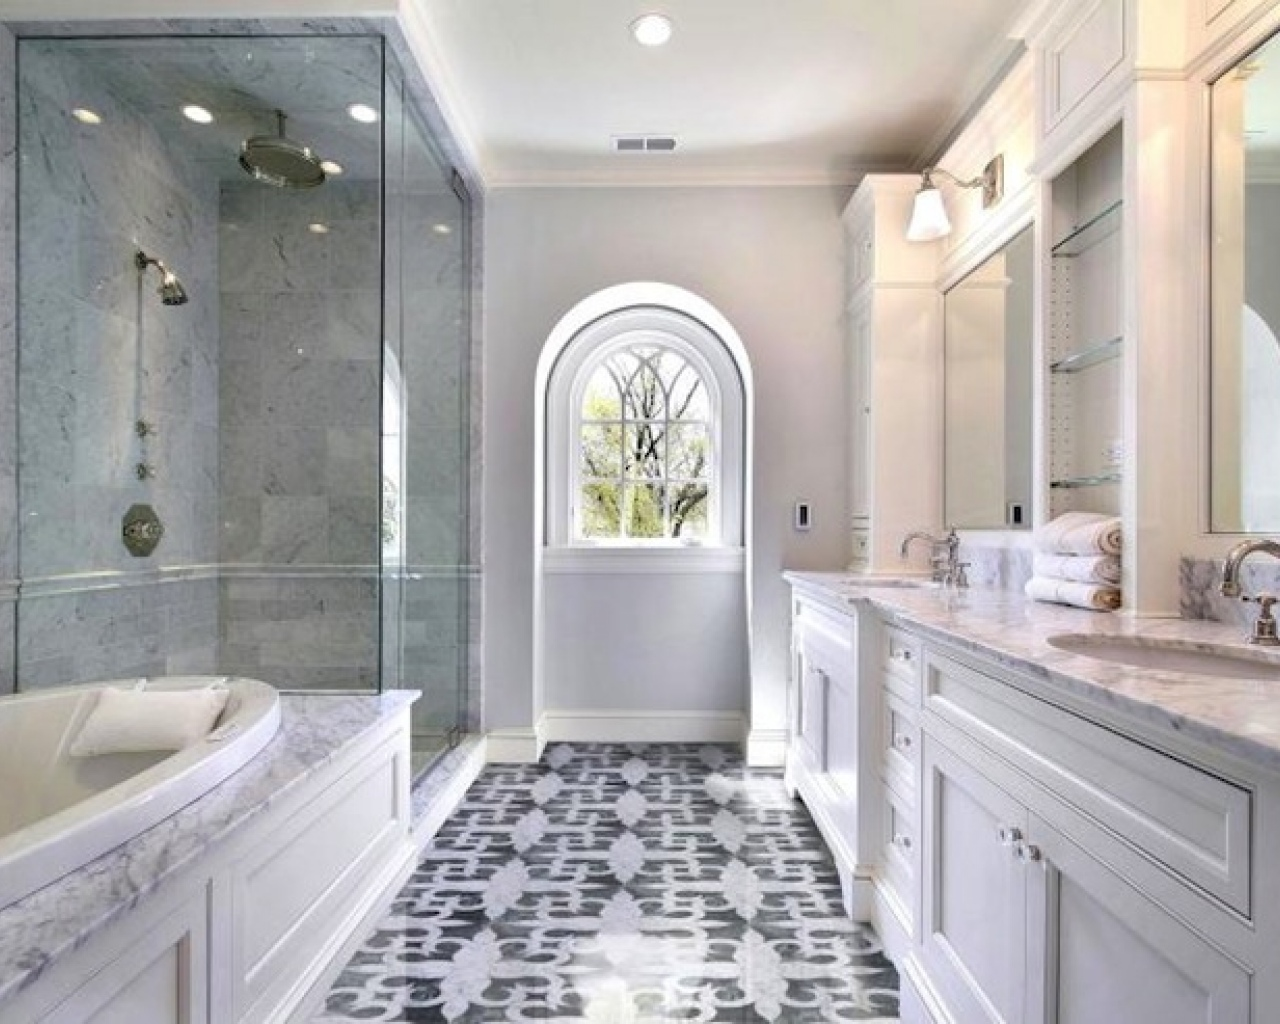 double-bathroom-vanity-marble-countertop-marble-mosaic-tiles-floor-bathroom-ideas-bathroom-bathroom.com-marble-marble-bathroom-marble-bathroom-vanity-marble-countertops-marble-floor-marble-mosaic